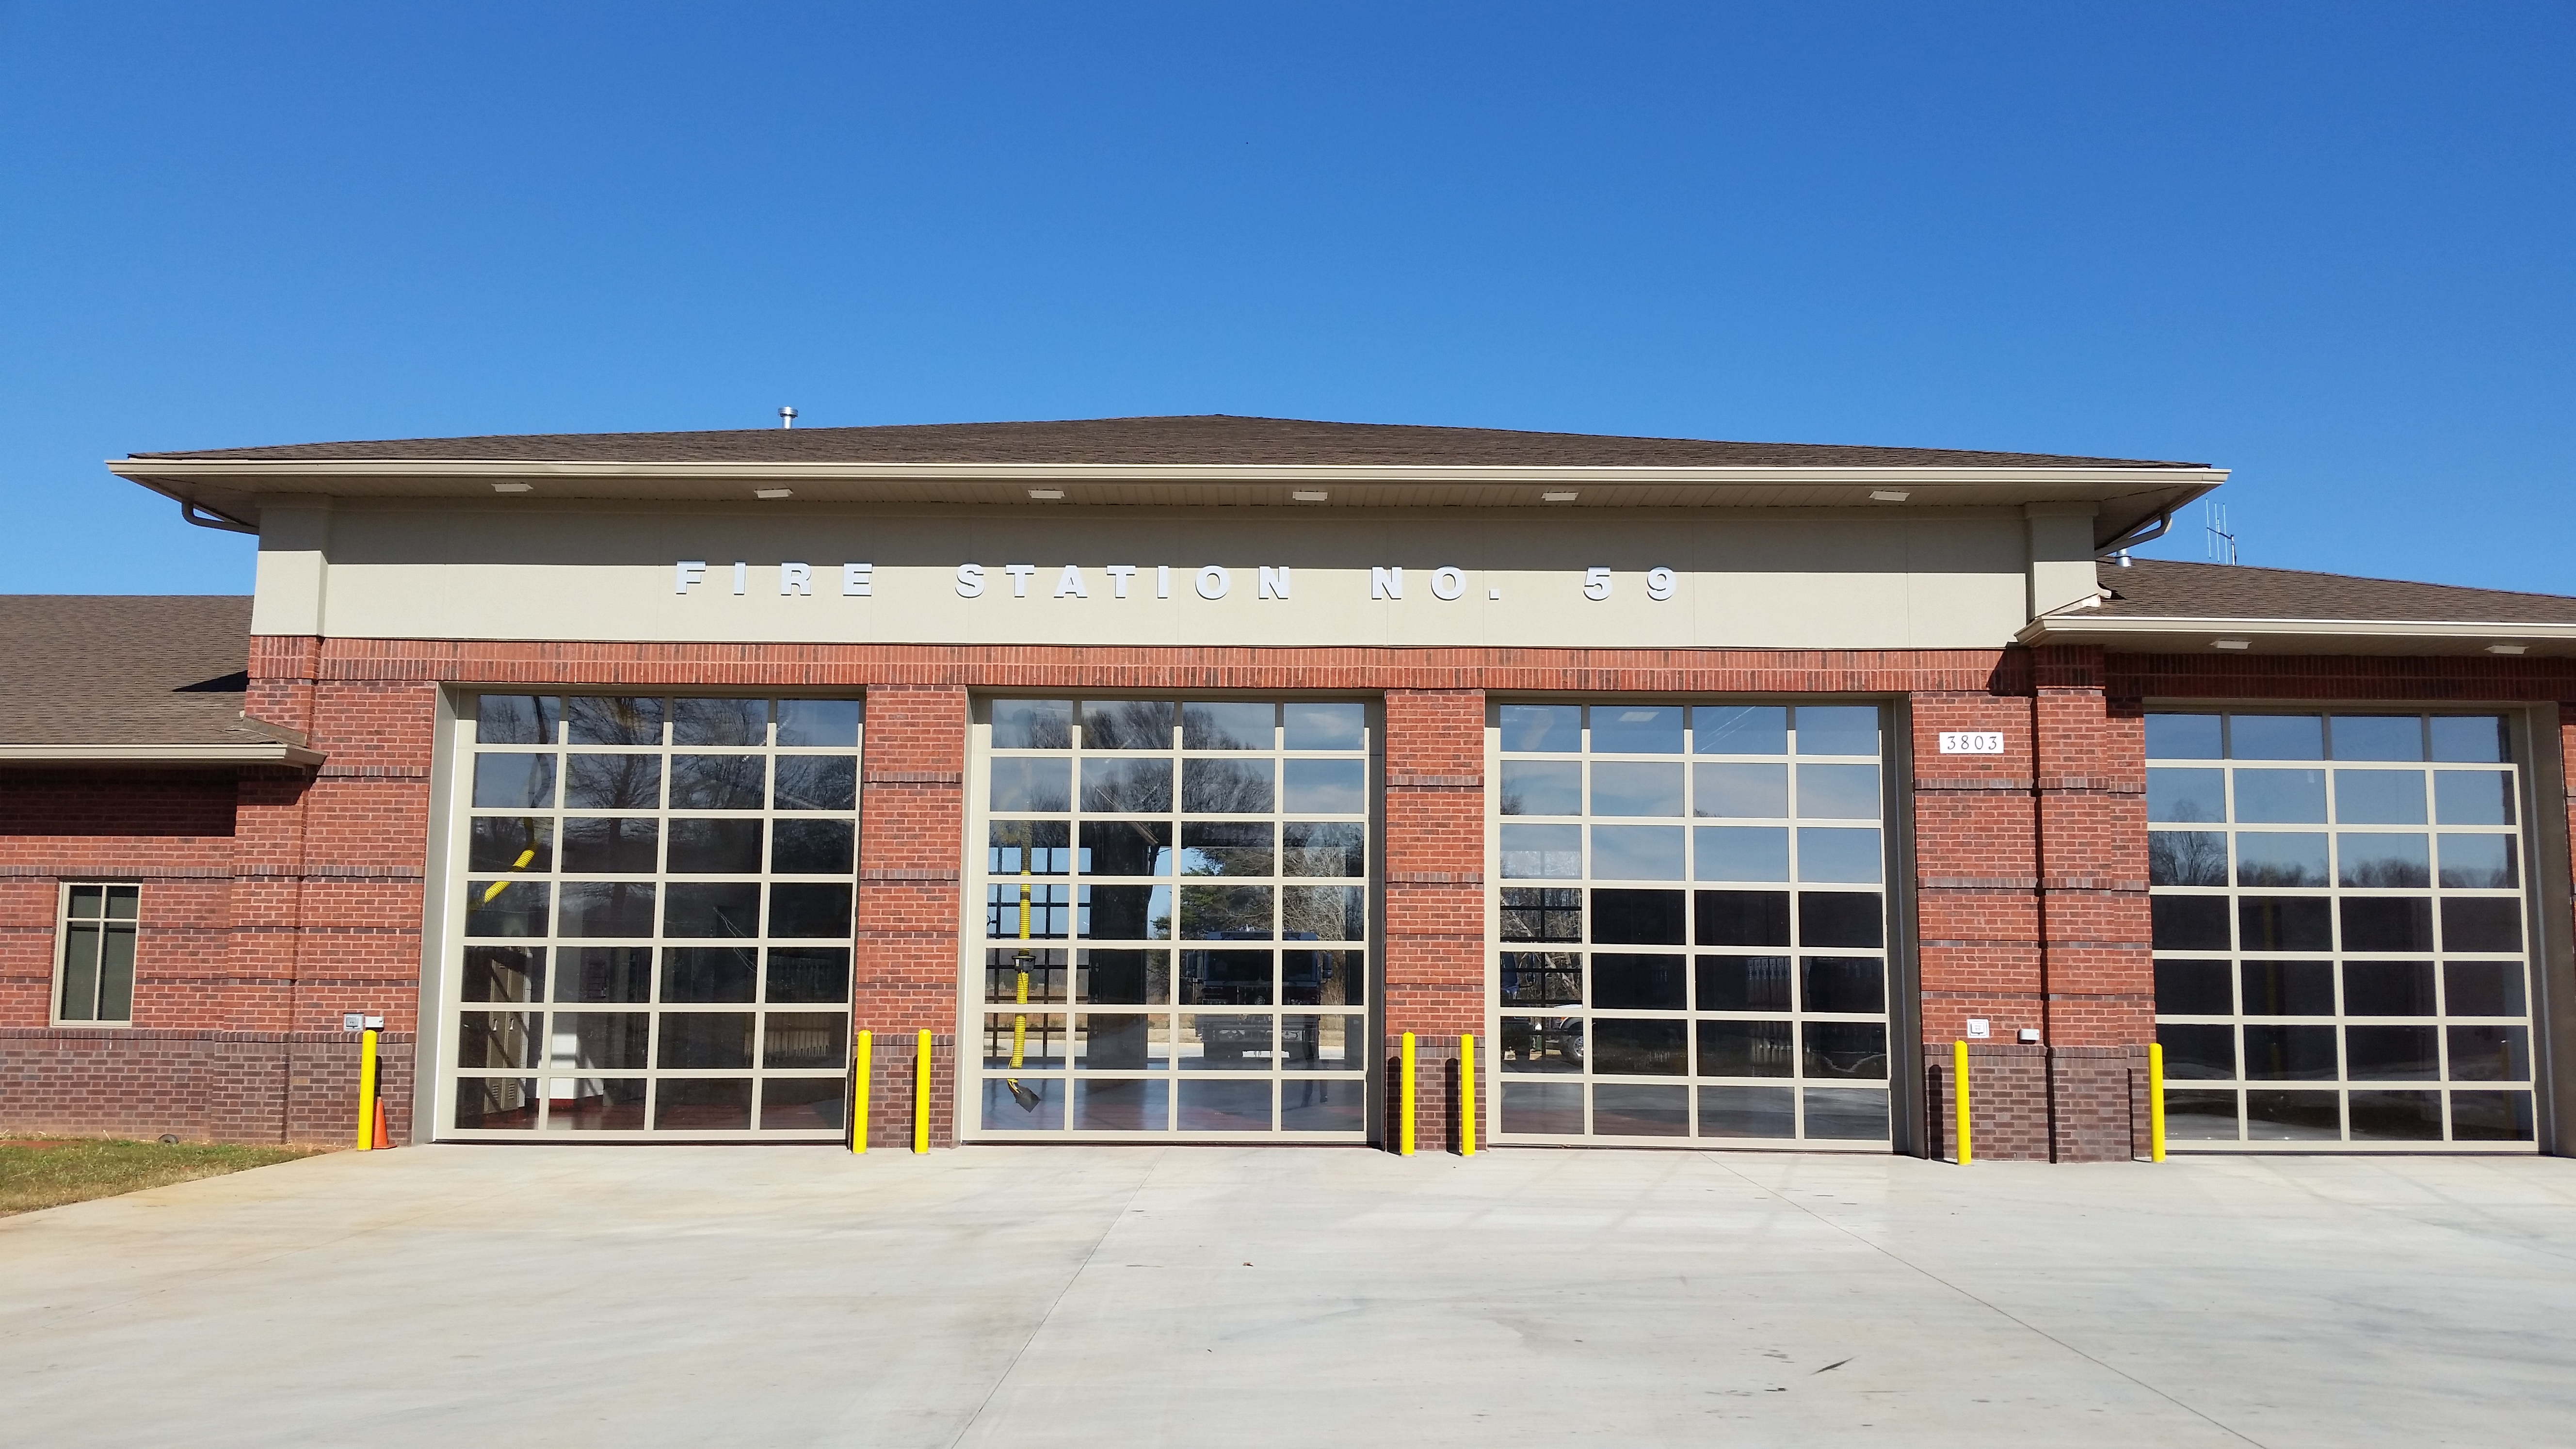 Fire Station 59